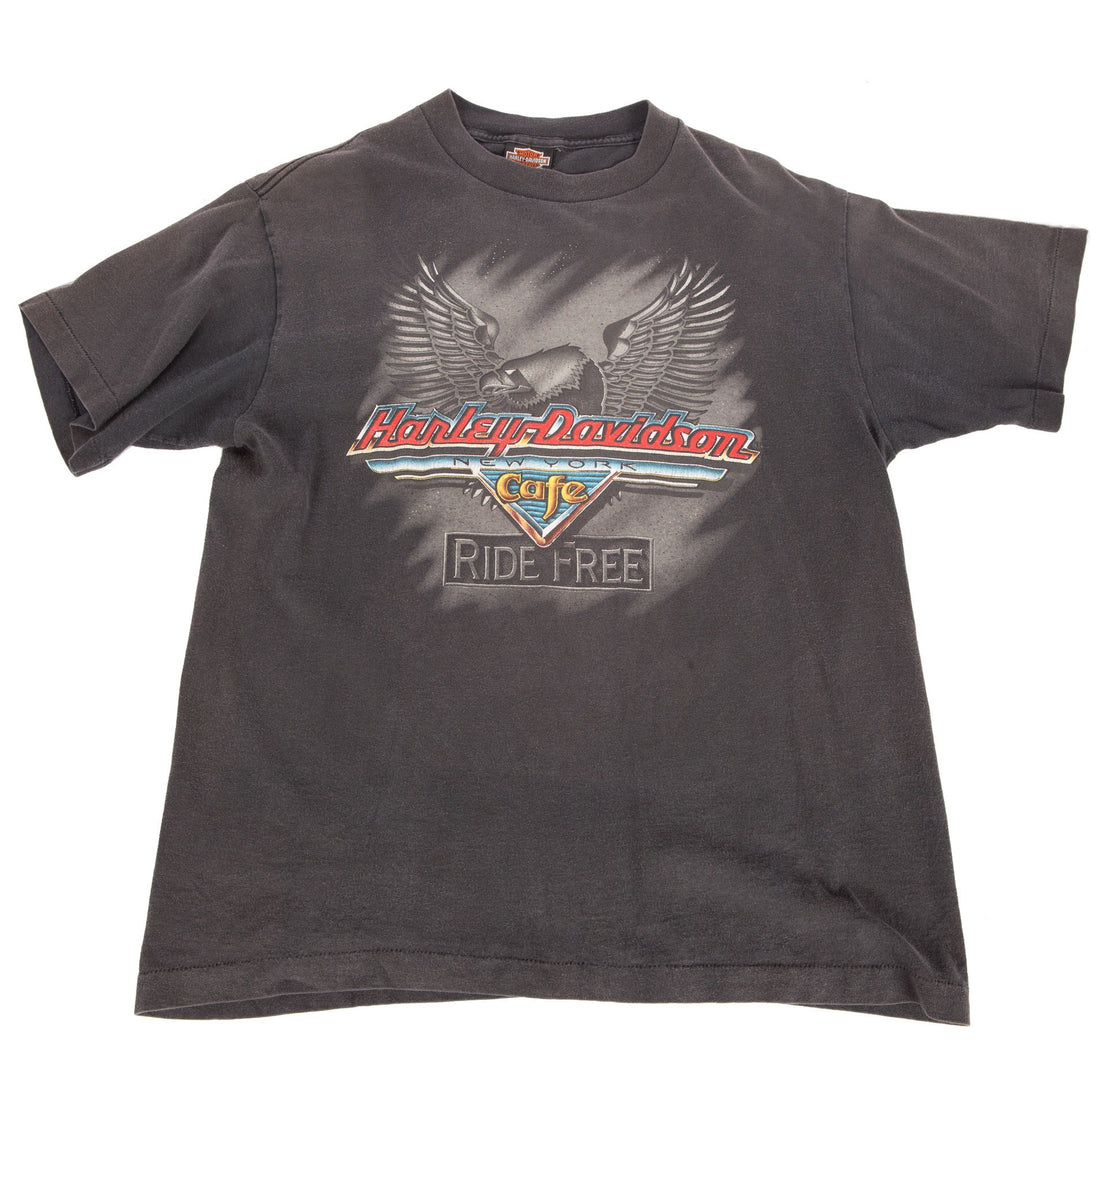 Vintage Black Harley Davidson Tee - Vintage - Iron and Resin